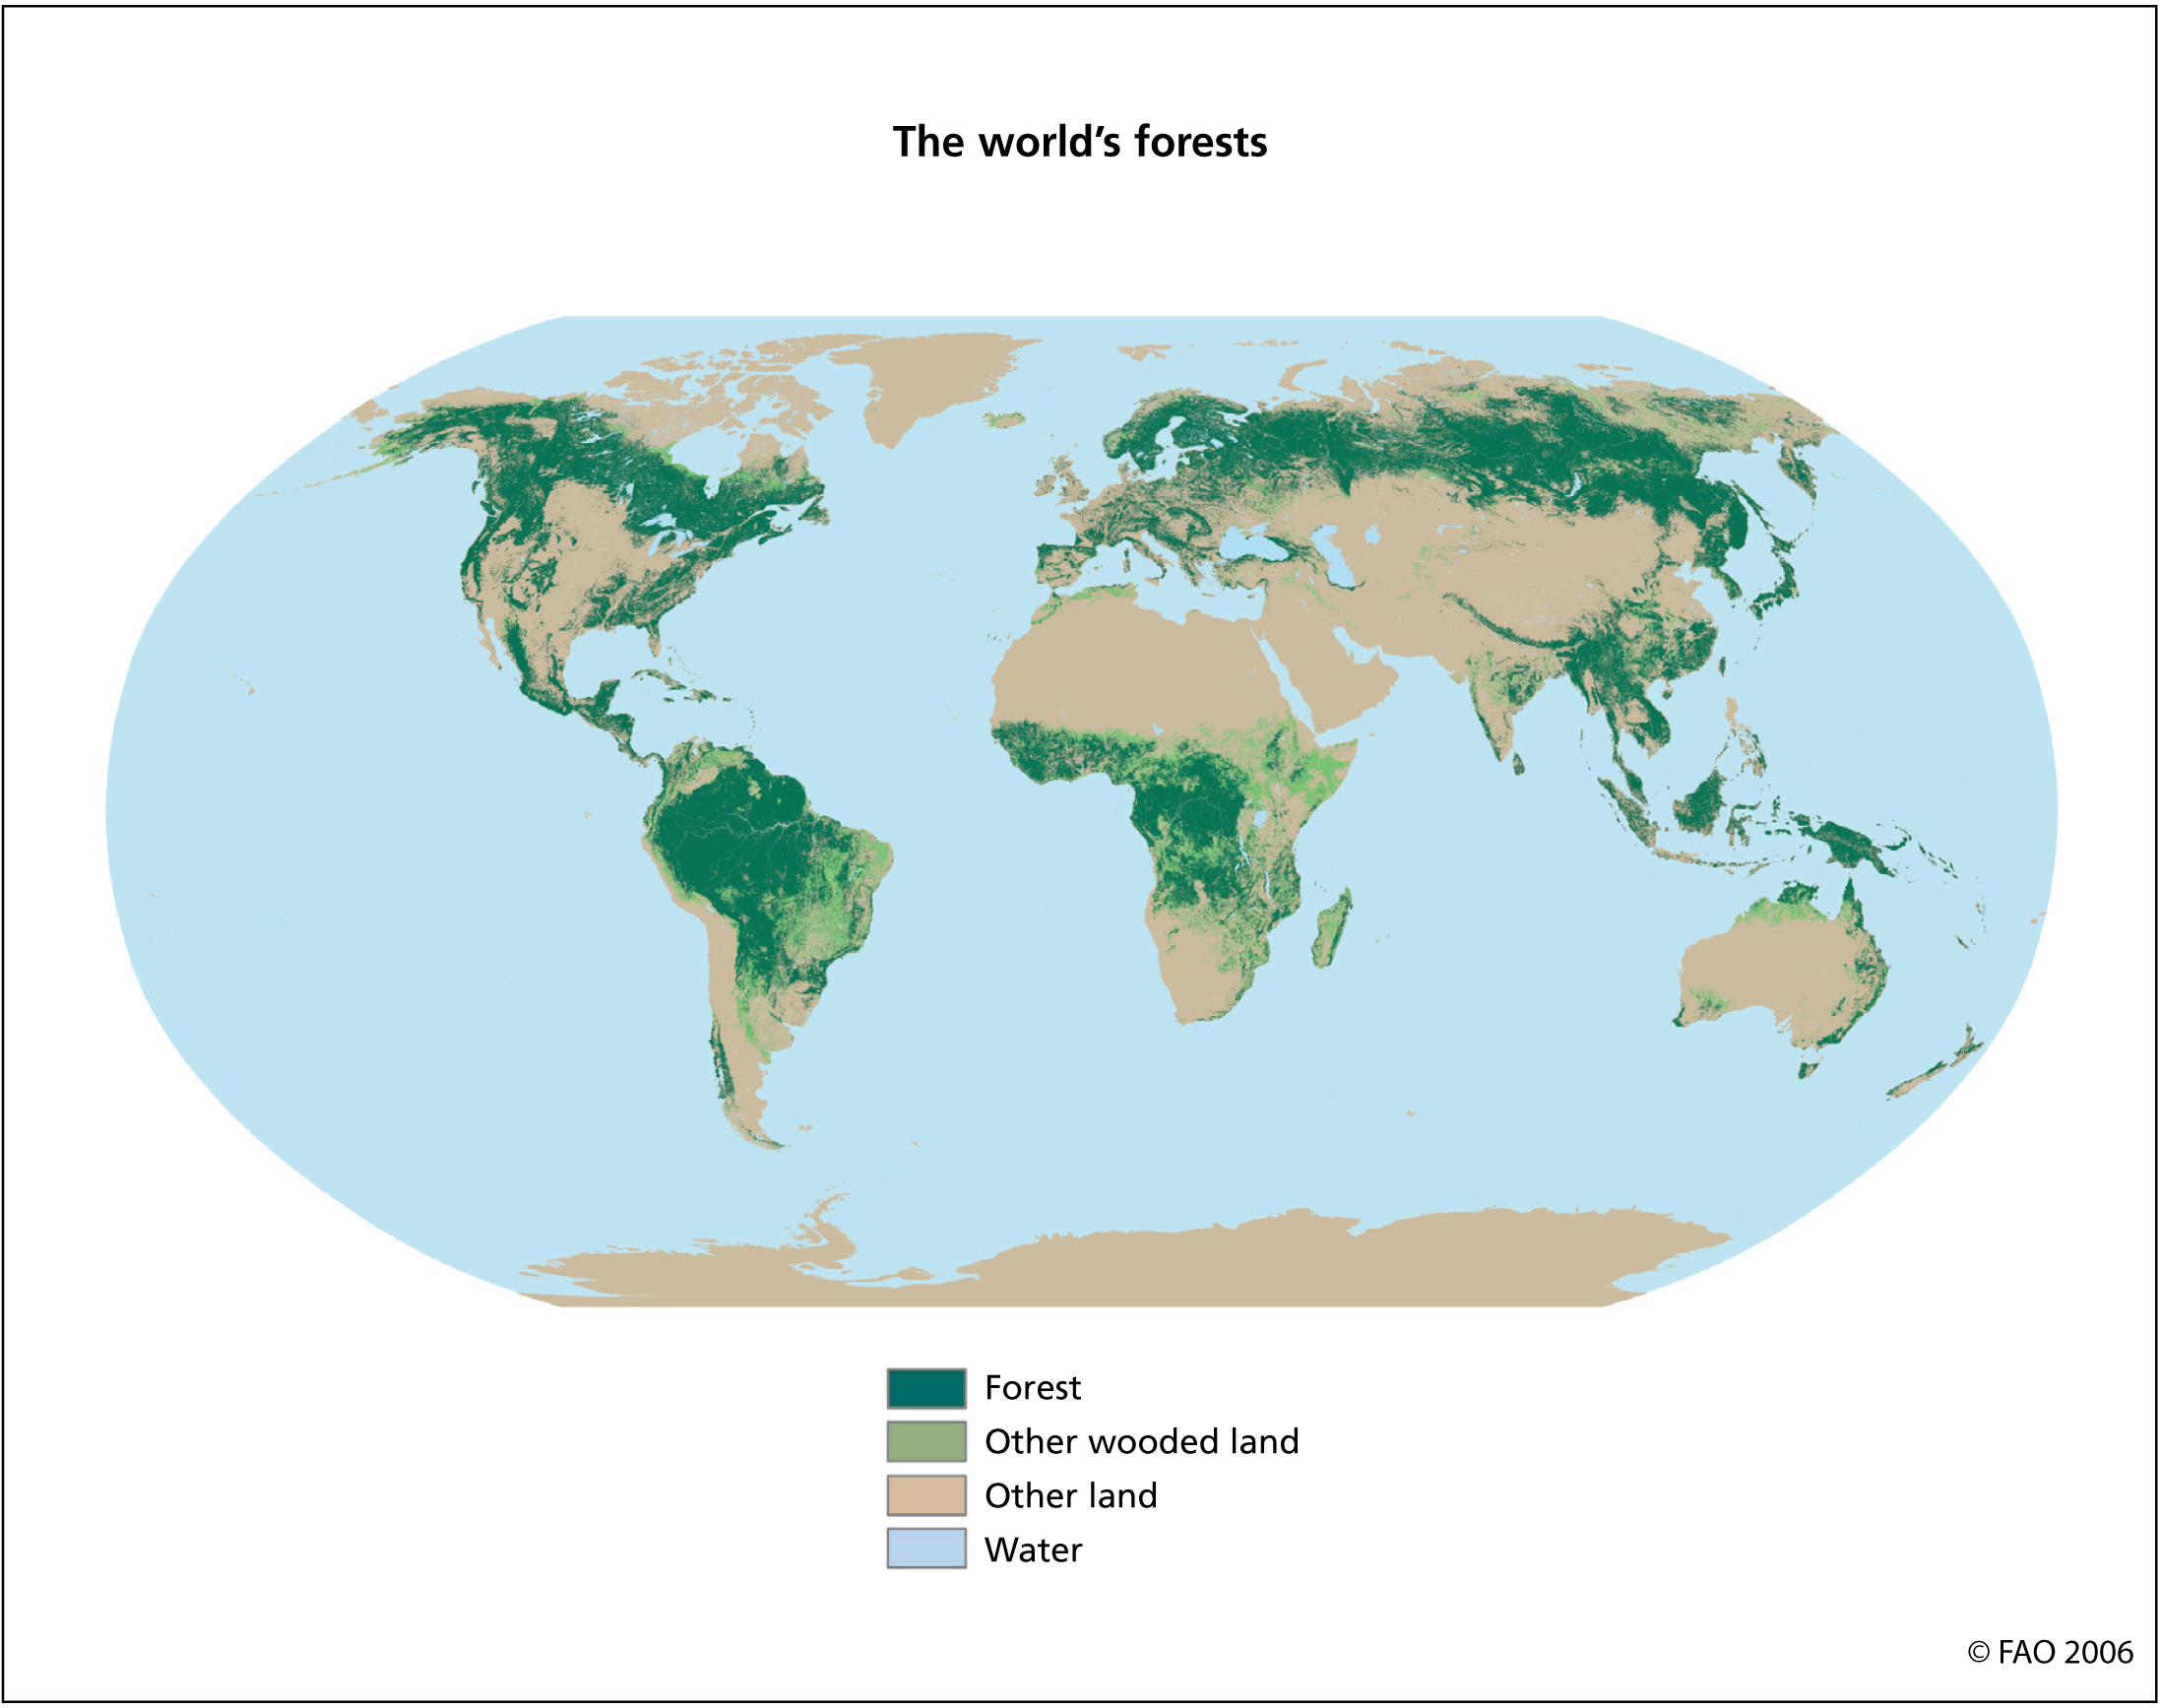 The world's forests 2006